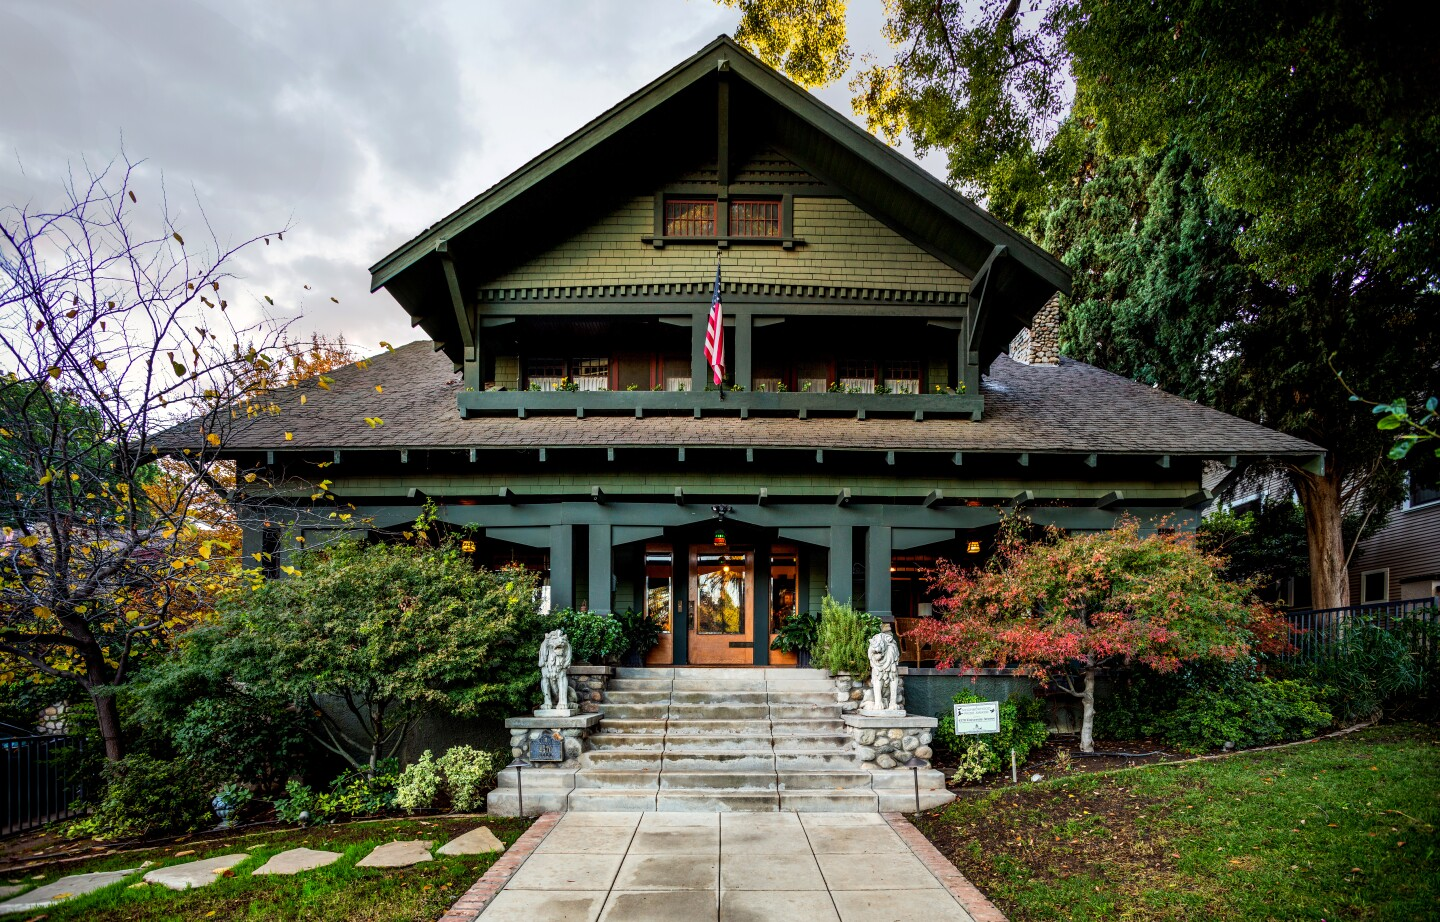 Built in 1909, the Swiss Chalet-style Craftsman is distinguished by its squarish design and a low-pitched, gabled roof with overhanging eaves. A sleeping porch sits above the covered front porch. Original details include Oregon pine woodwork, a brick living room fireplace and fixtures. Another holdover from the early 1900s: a hitching post out front. Listed for $1.2 million, the landmark residence has been updated while maintaining its classic details. Of note is the modernized main kitchen and a prep's kitchen that was installed in the garage. The basement has been reimagined as a secret bar.